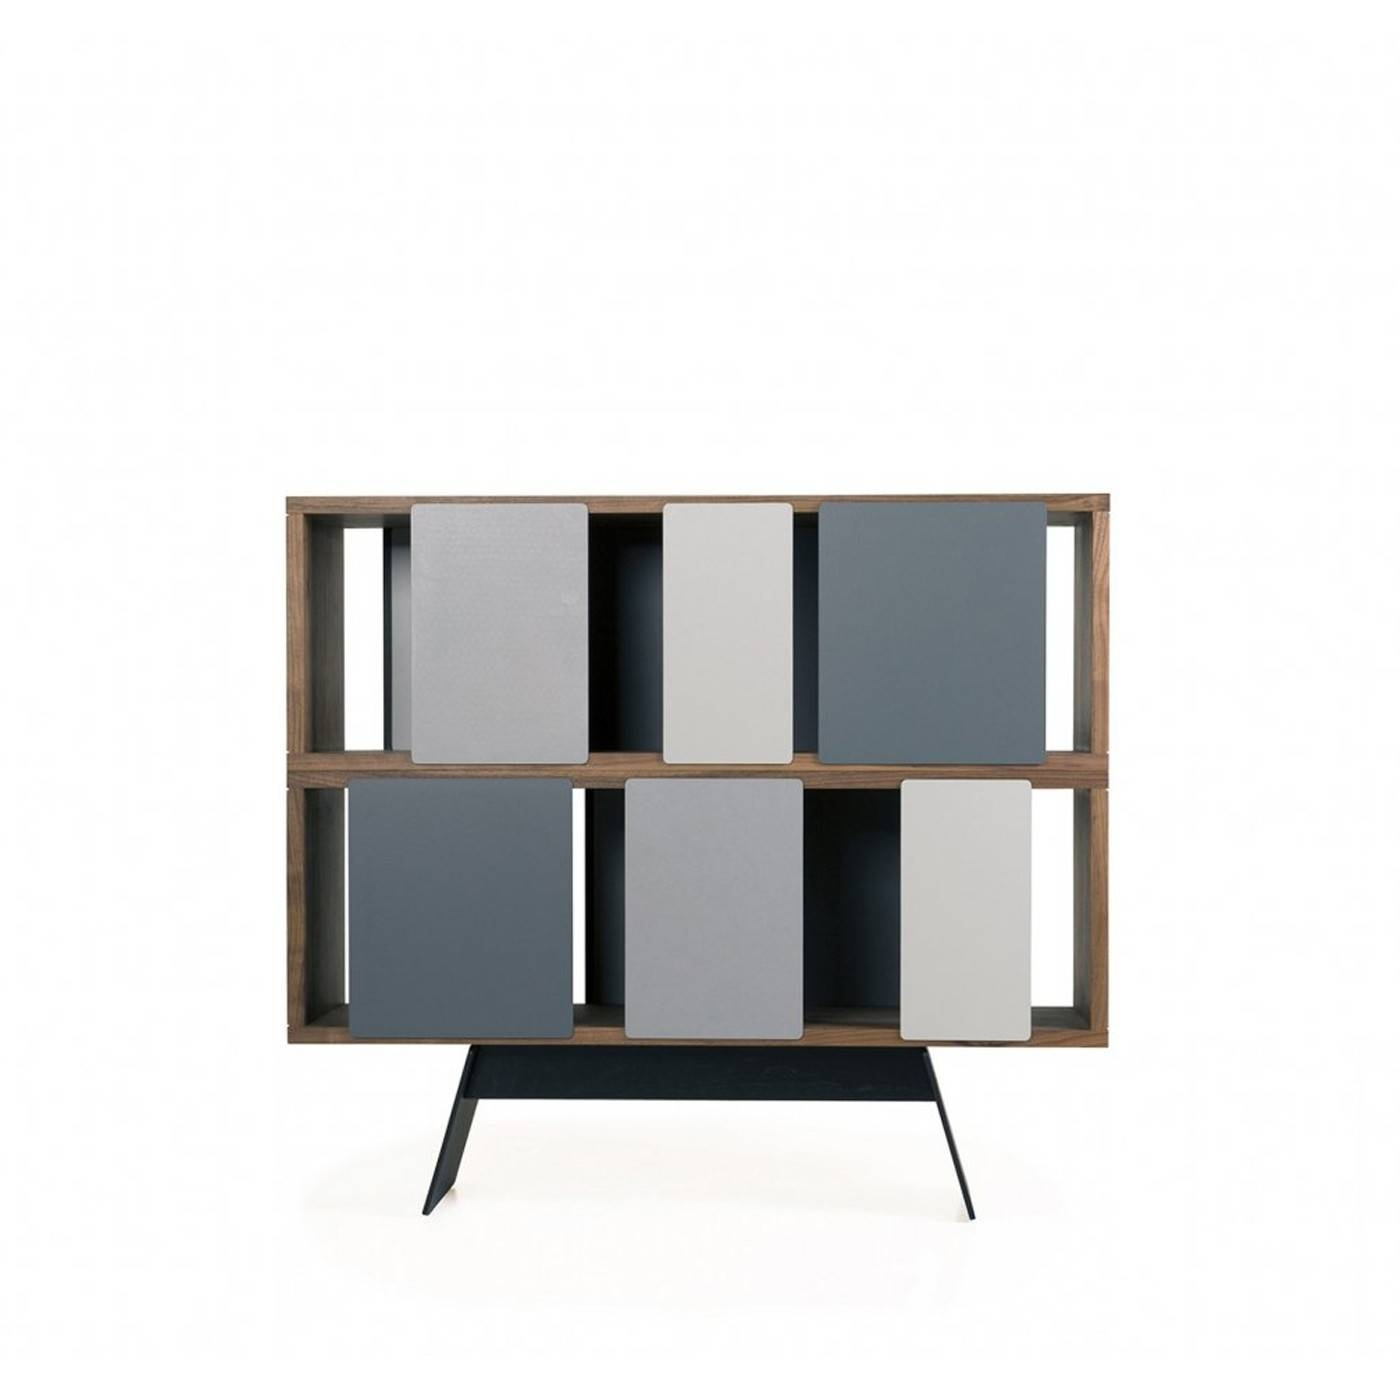 Designer Sideboards | Modern & Contemporary Sideboards | Heal's with regard to Narrow Sideboards (Image 7 of 30)